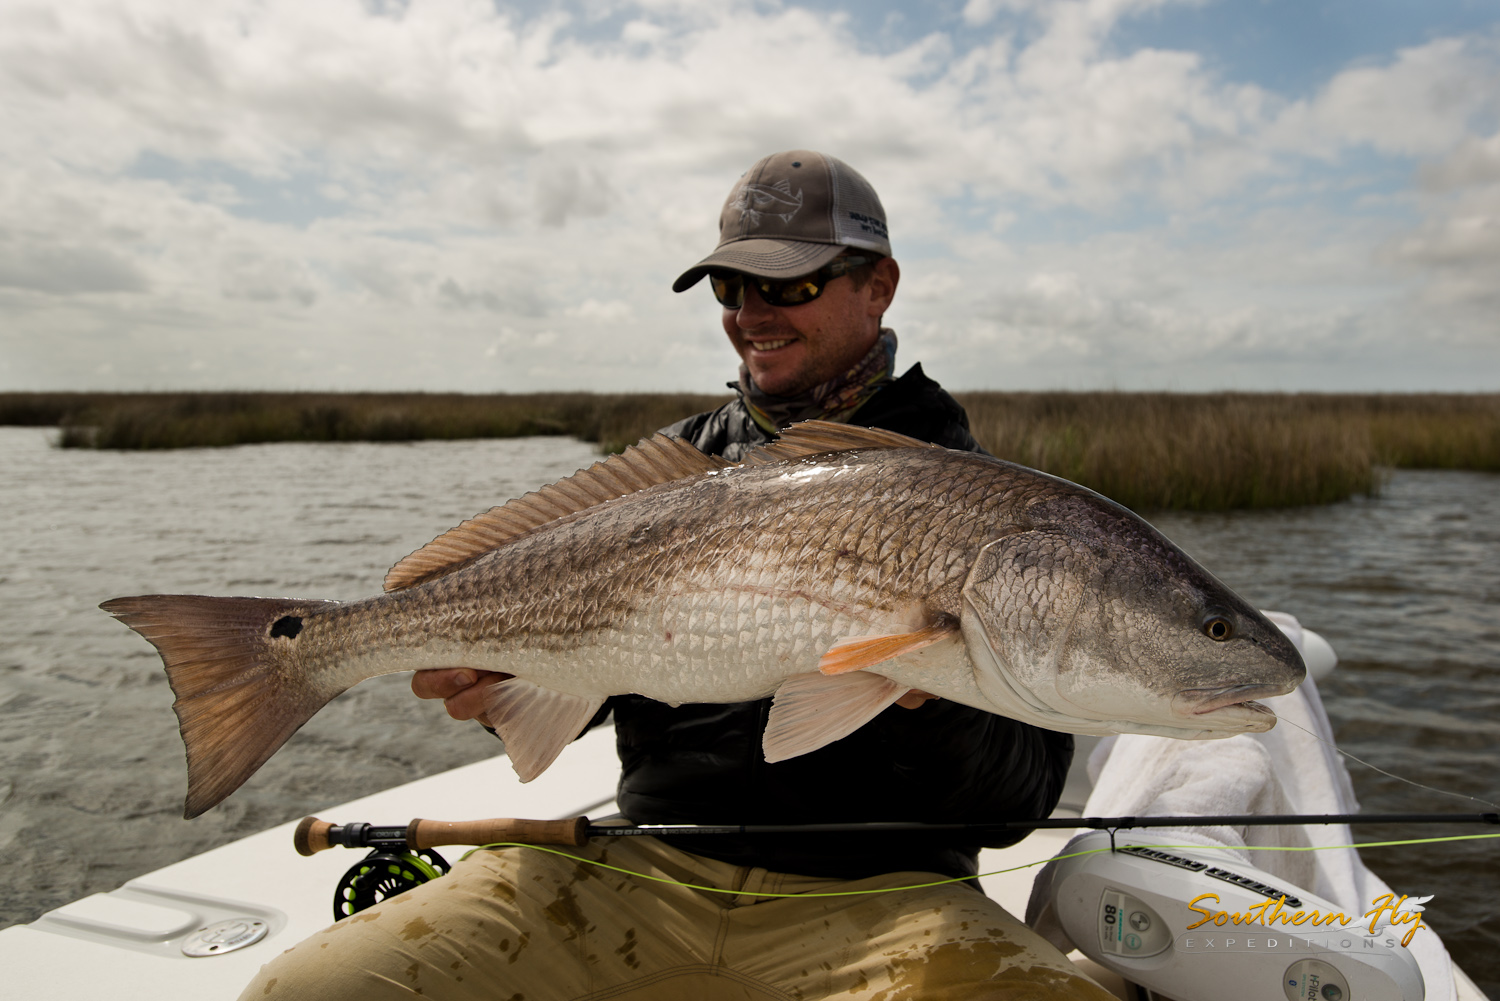 2019-03-29_SouthernFlyExpeditions_NewOrleans_TylerTreece&DylanTreece-7.jpg